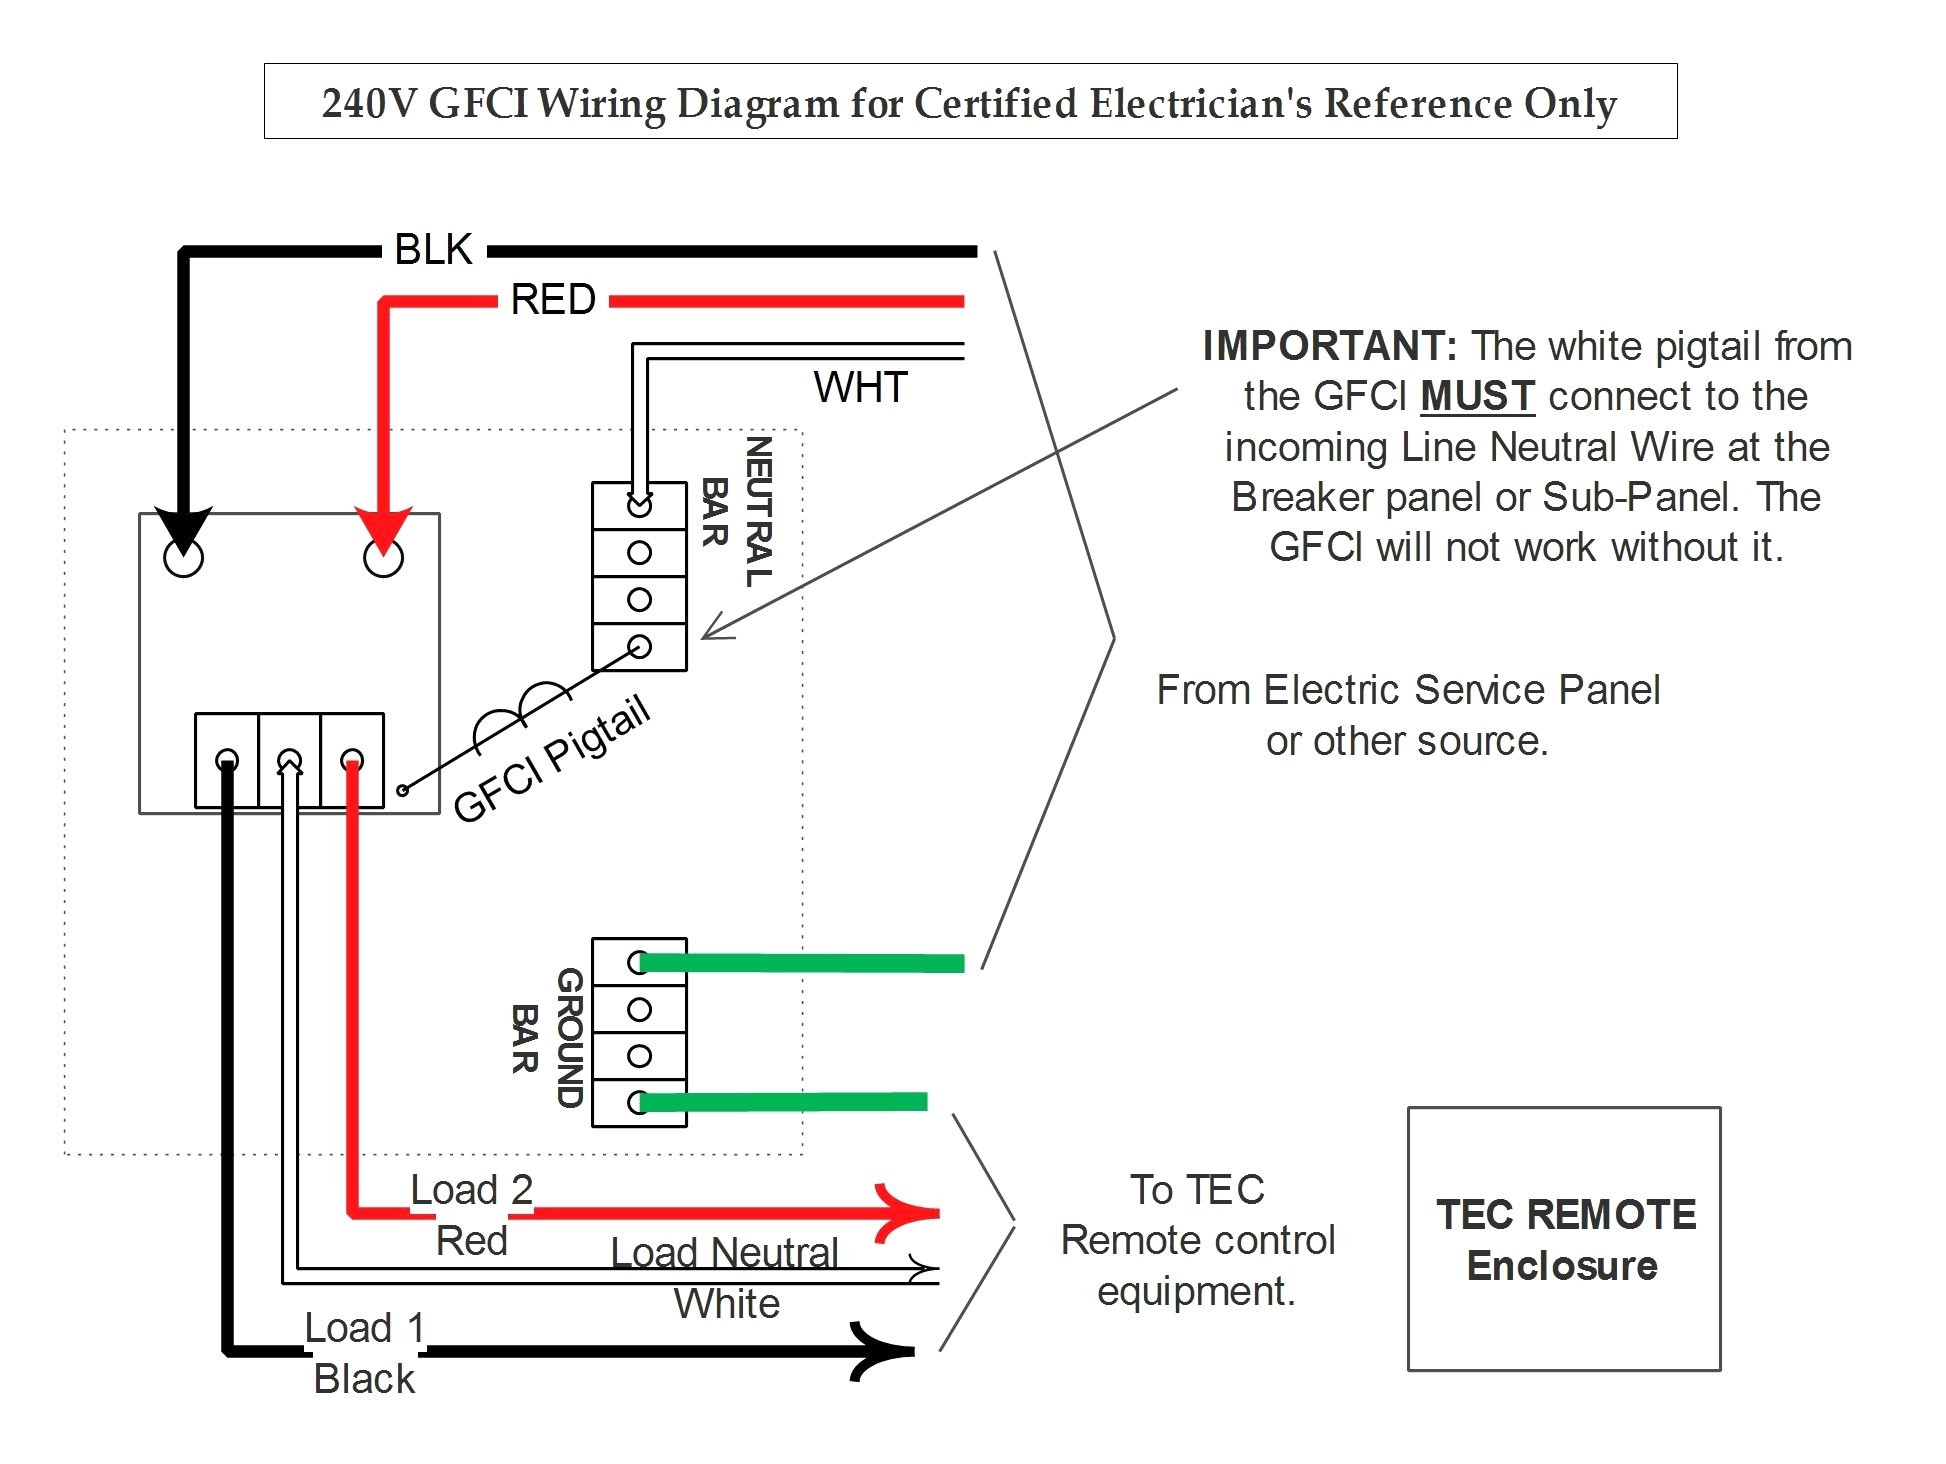 Atlas 2 Post Lift Wiring Diagram | Free Wiring Diagram on automobile steering system, automobile interior diagrams, automobile transmission diagrams, automobile clutch diagrams, automobile lights diagrams, automobile fuel system, automobile specifications, automobile body diagrams, automobile engine diagrams, automobile assembly diagrams, automobile electronics diagrams,